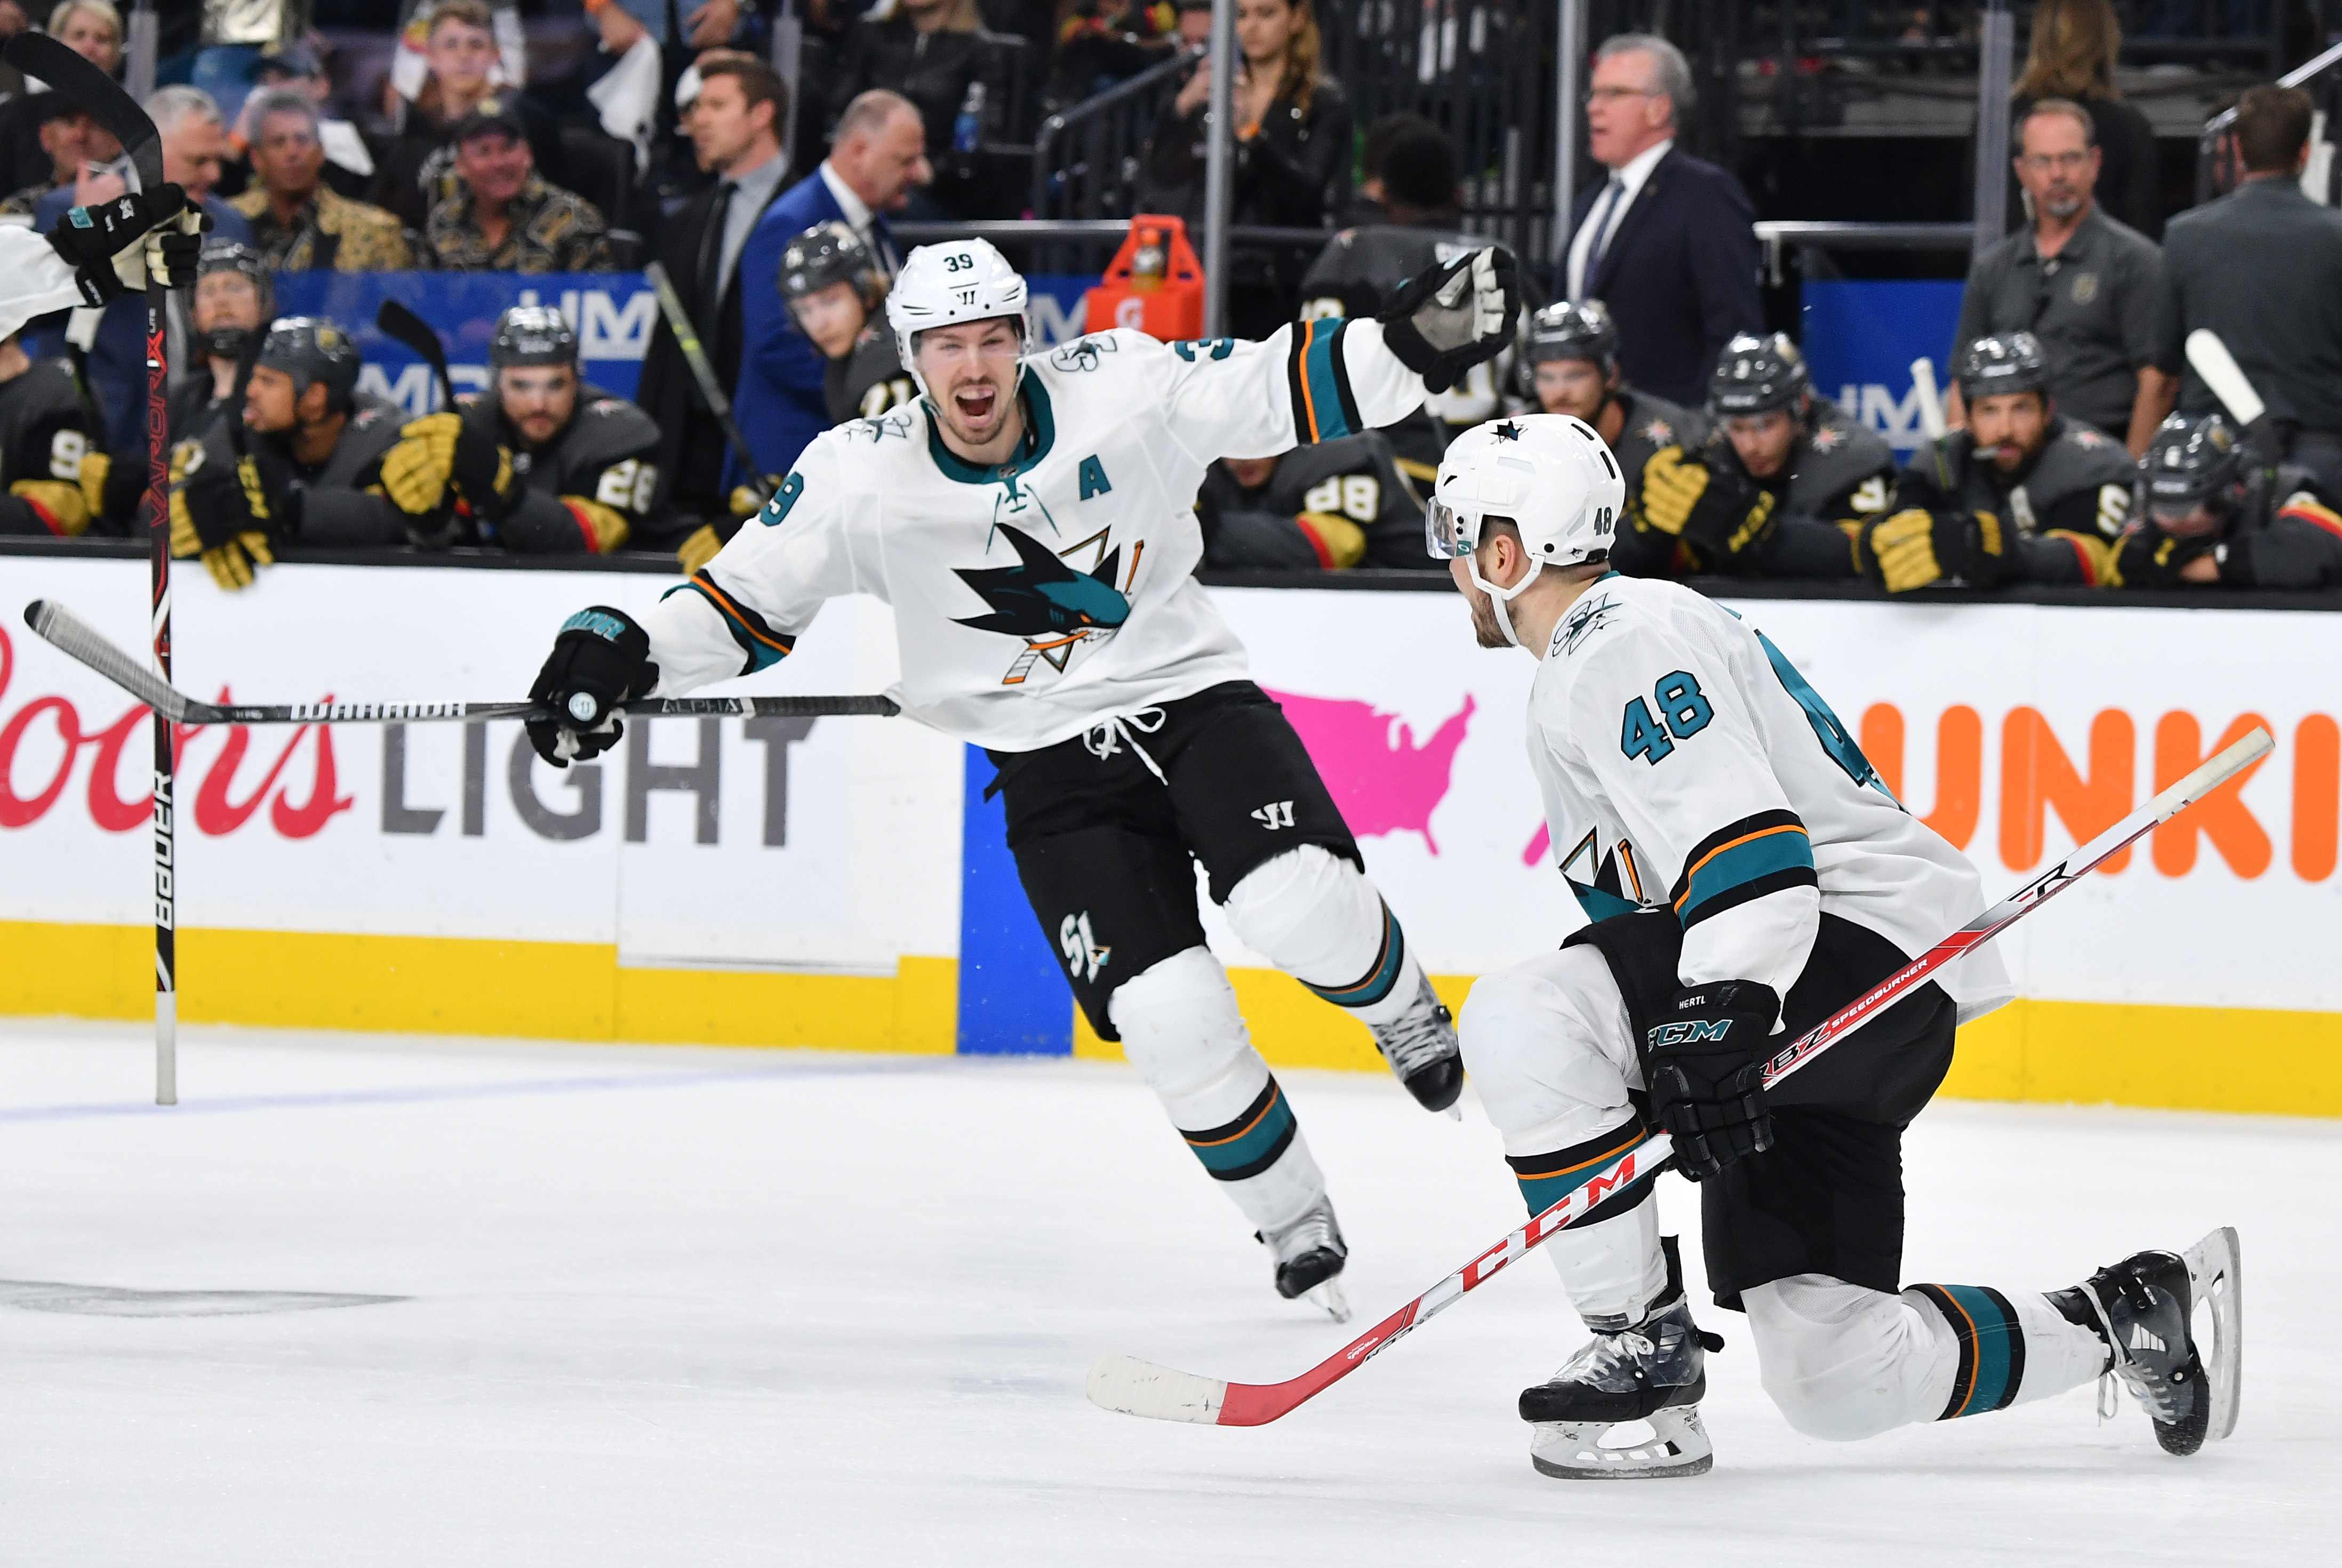 Tomas Hertl of the San Jose Sharks celebrates after scoring a goal in double overtime against the Vegas Golden Knights in Game 6 during the 2019 NHL Stanley Cup Playoffs at T-Mobile Arena on April 21, 2019 in Las Vegas, Nevada.